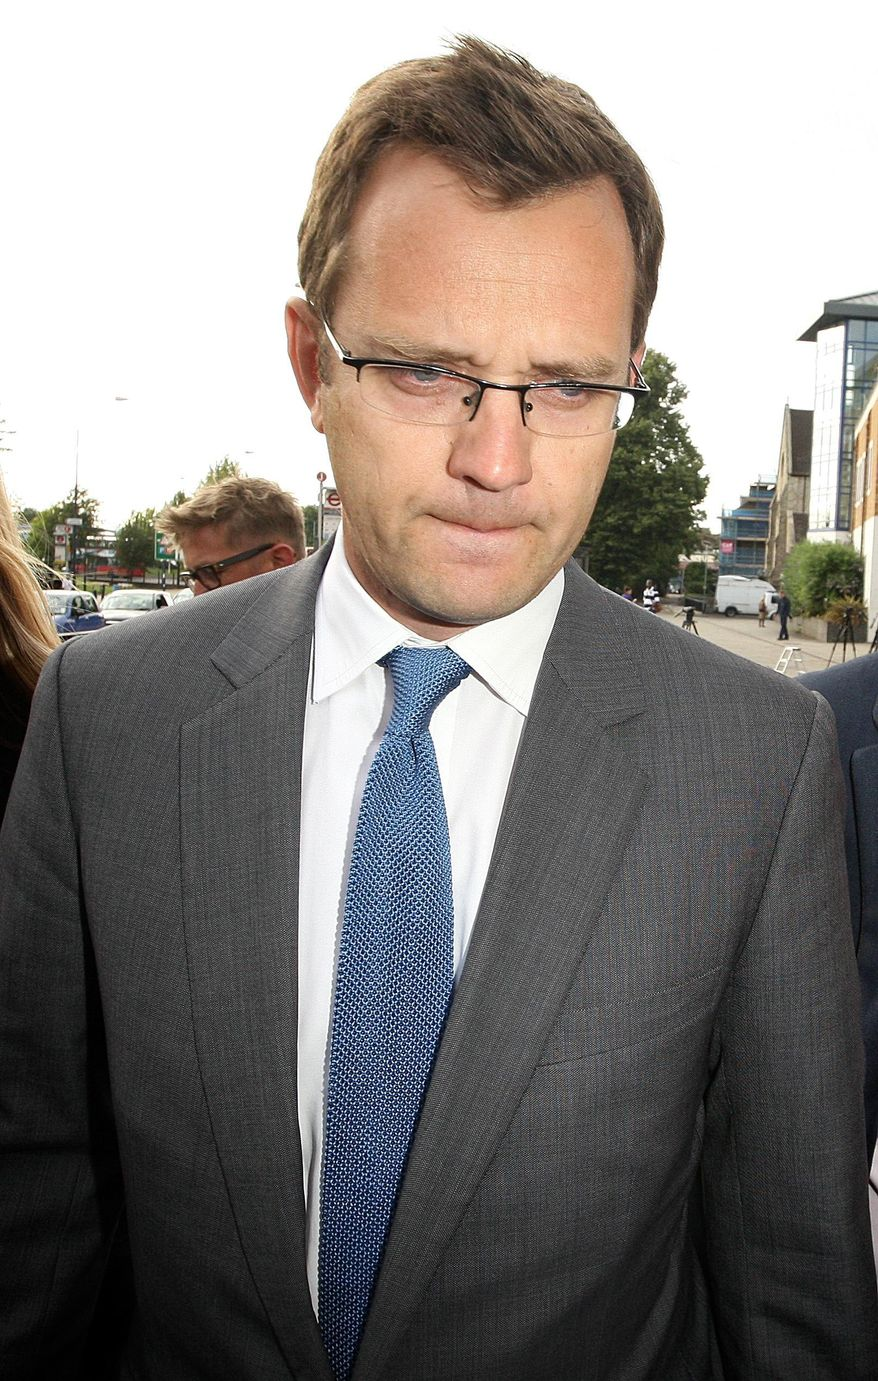 Former Downing Street communication chief Andy Coulson speaks to members of the media as he leaves Lewisham police station in south London, after being arrested in a phone hacking and police corruption scandal, Friday July 8, 2011. (AP Photo/PA, Dominic Lipinski)